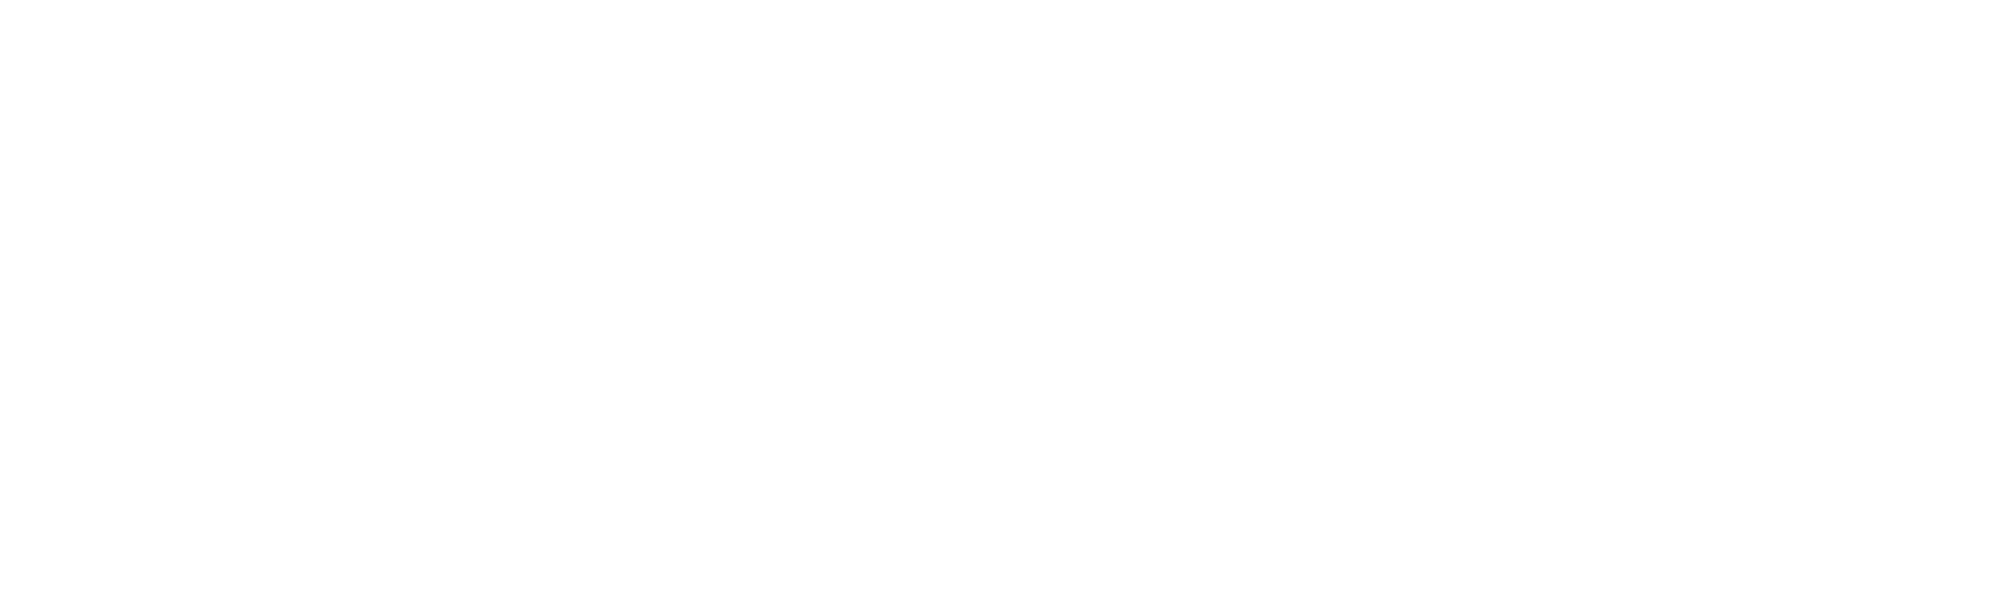 Sports Media & Entertainment 360